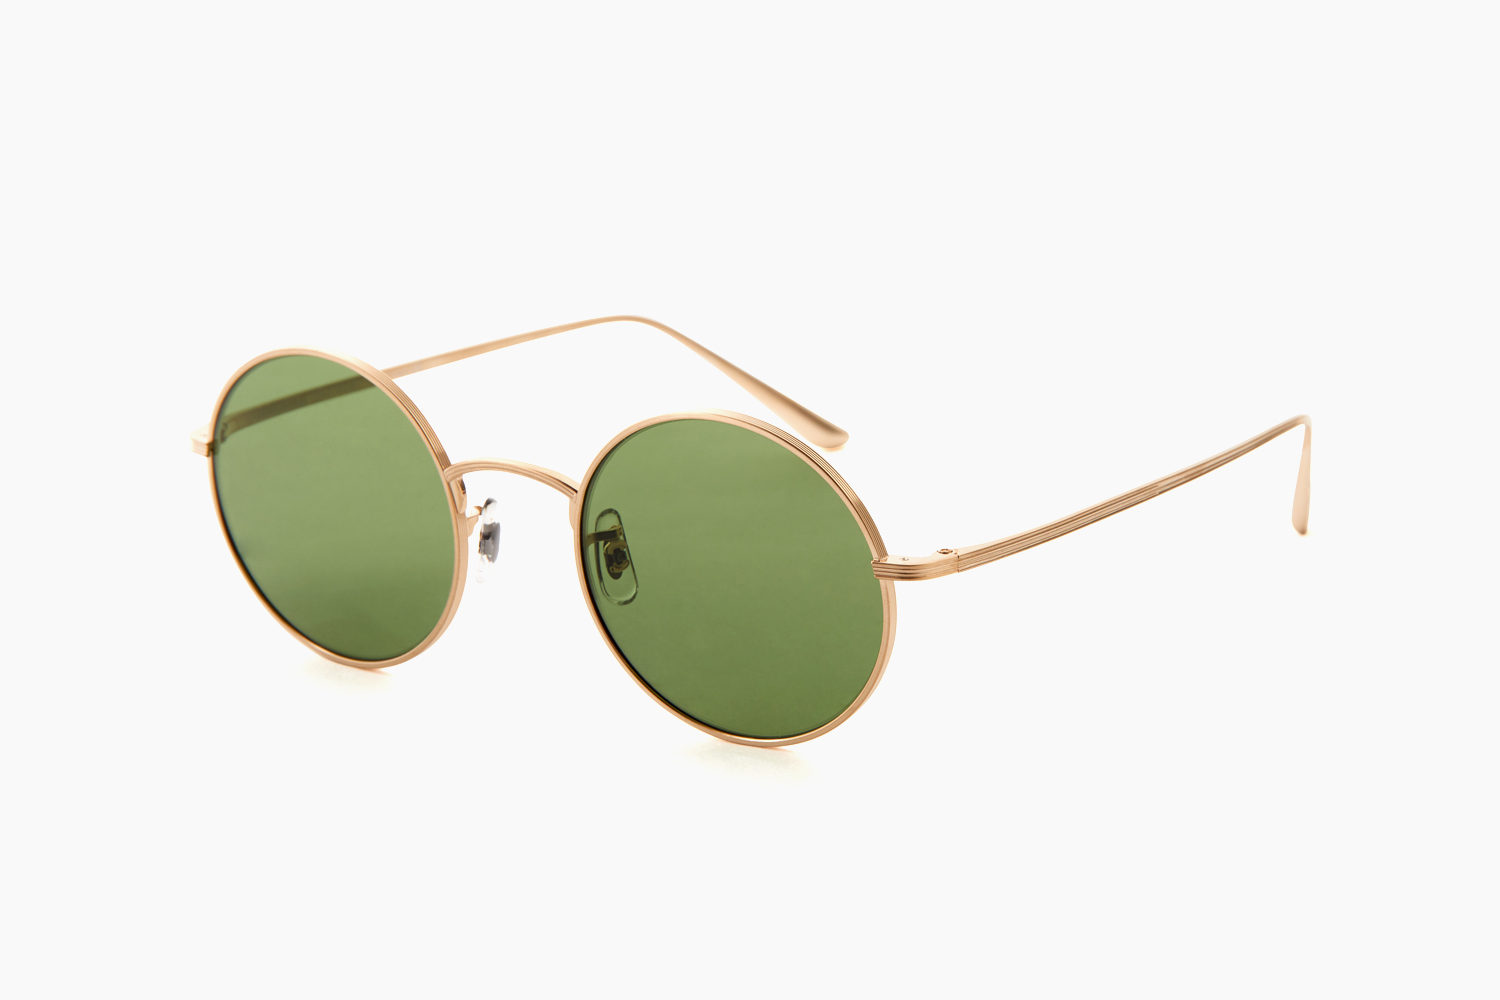 OLIVER PEOPLES THE ROW|After Midnight - Antique Gold|OLIVER PEOPLES